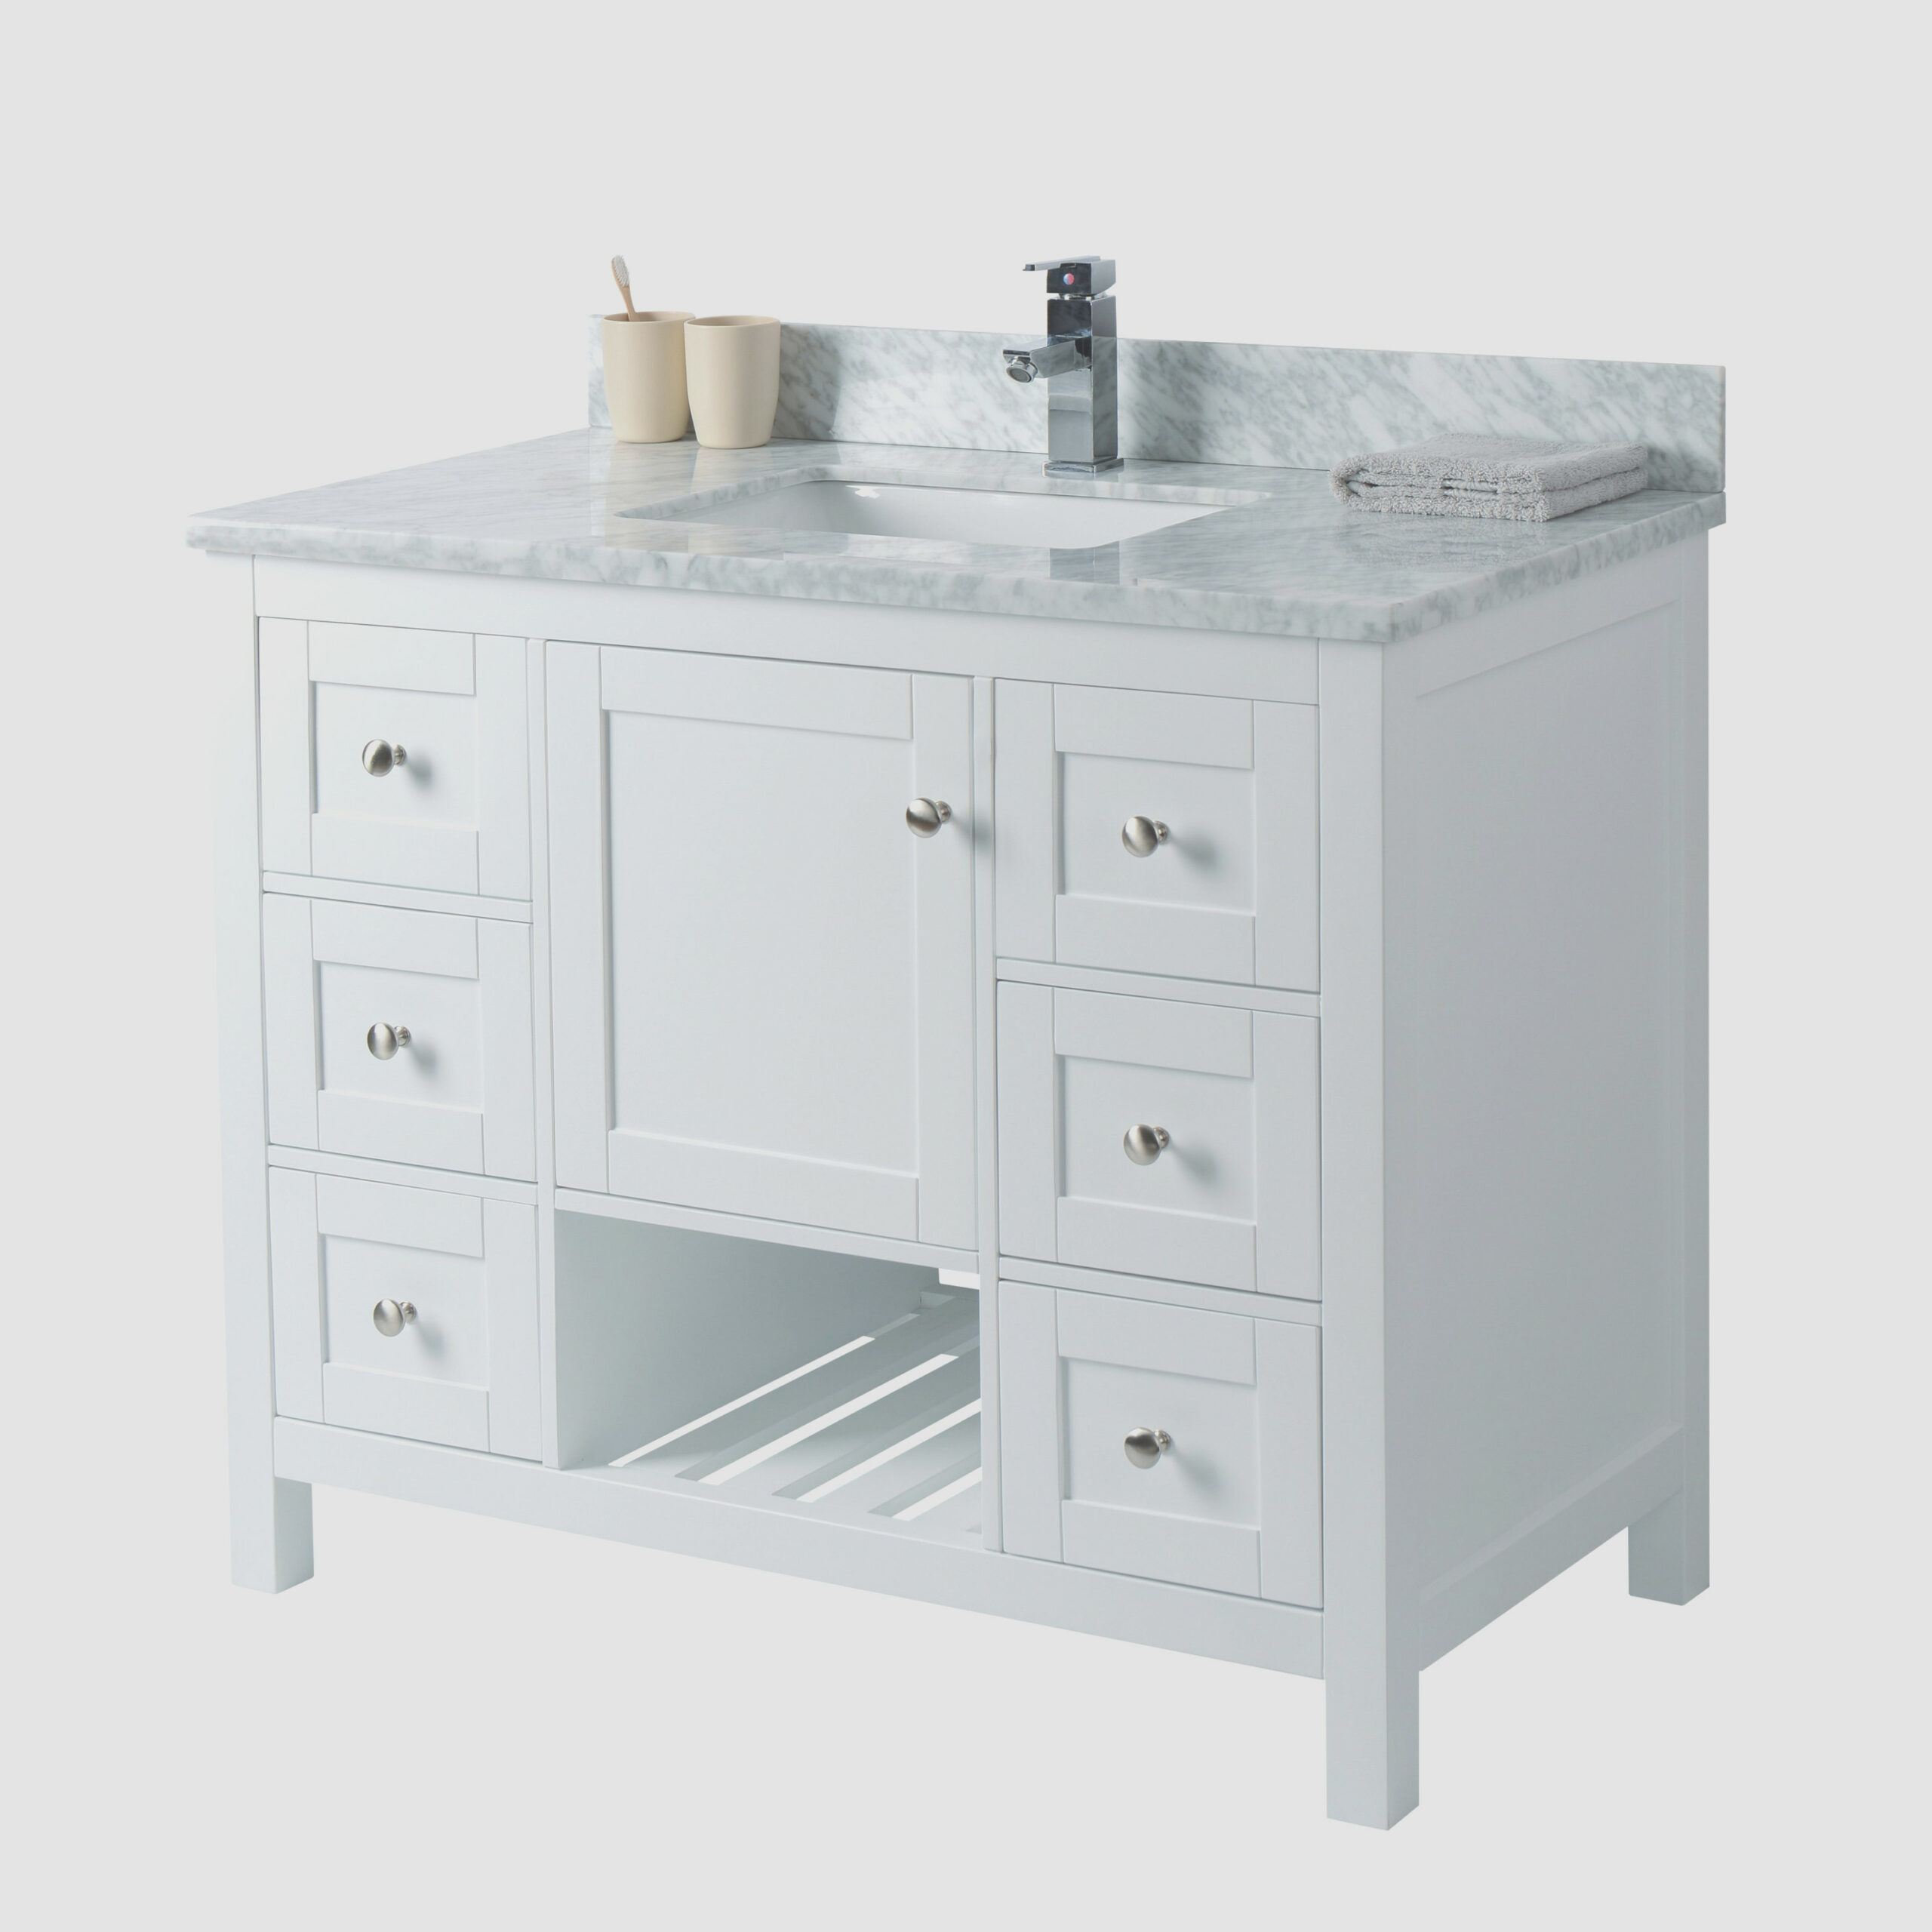 1 Inch Bathroom Vanity Cabinet Only